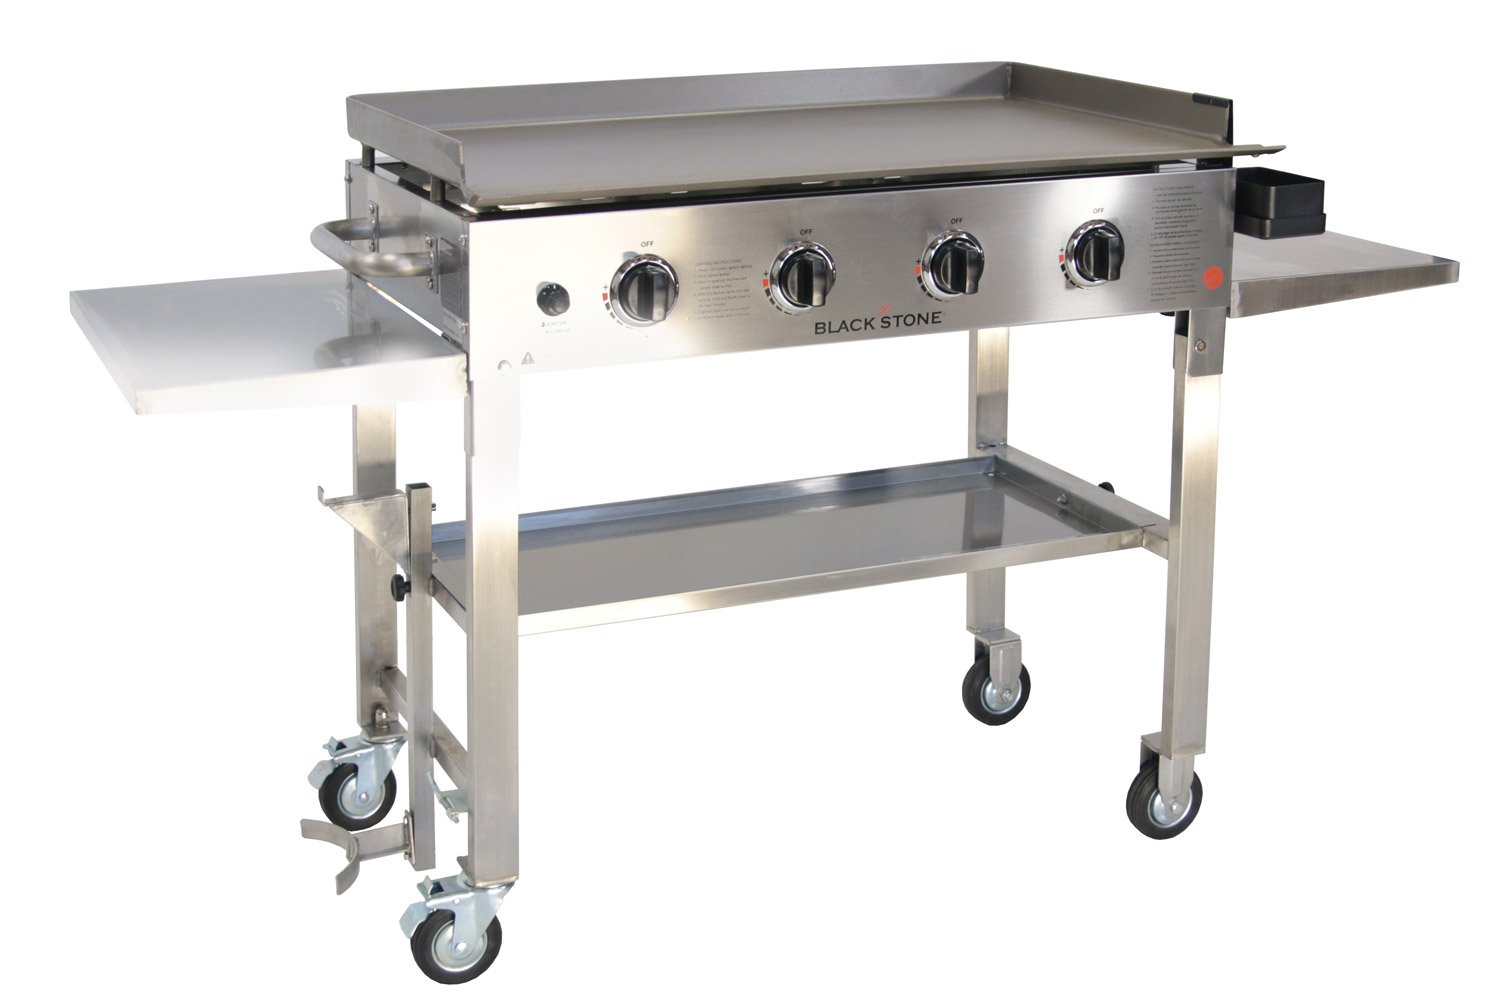 Amazon.com : Blackstone 36 inch Stainless Steel Outdoor Cooking ...